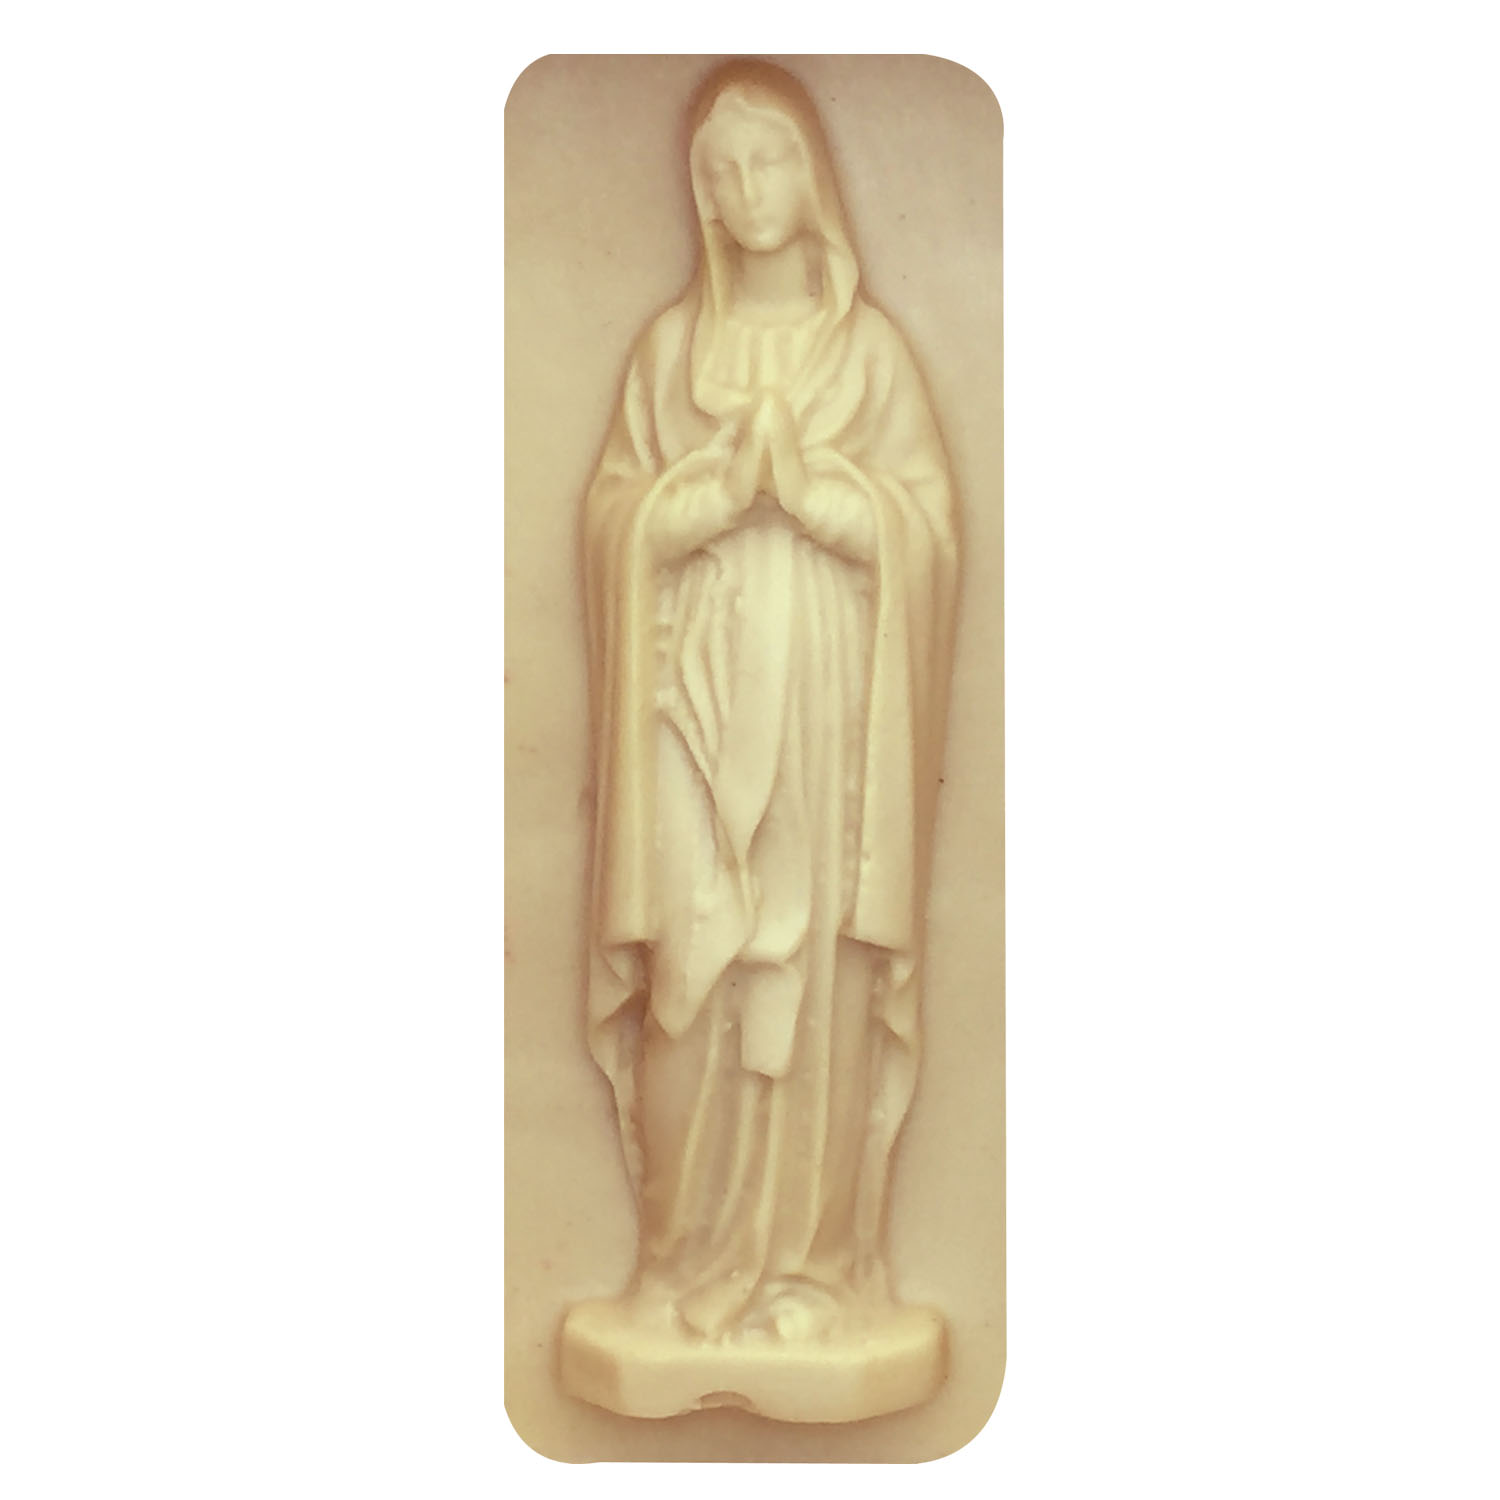 M0235 Silicone mould Virgin Mary 3D Mold Soap Moulds Fondant Cake Decorating Baking Tools in Cake Molds from Home Garden